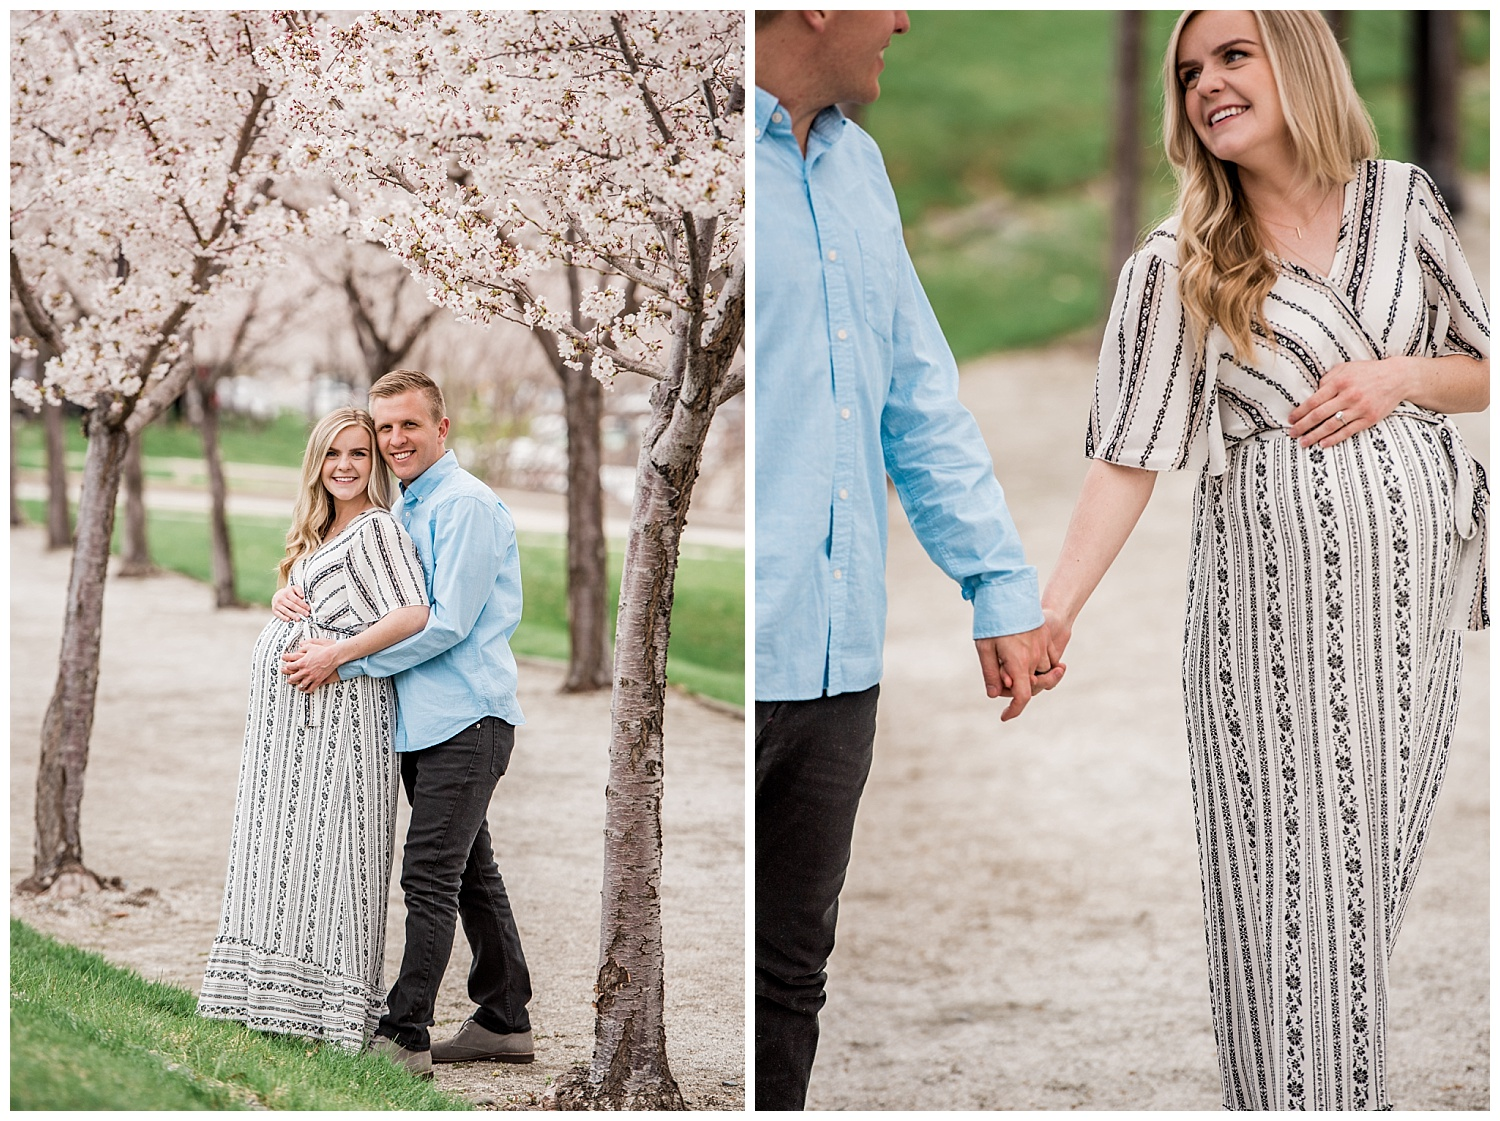 Dan Page Photography, Utah State Capitol Maternity Session, Spring Cherry Blossoms (14).jpg